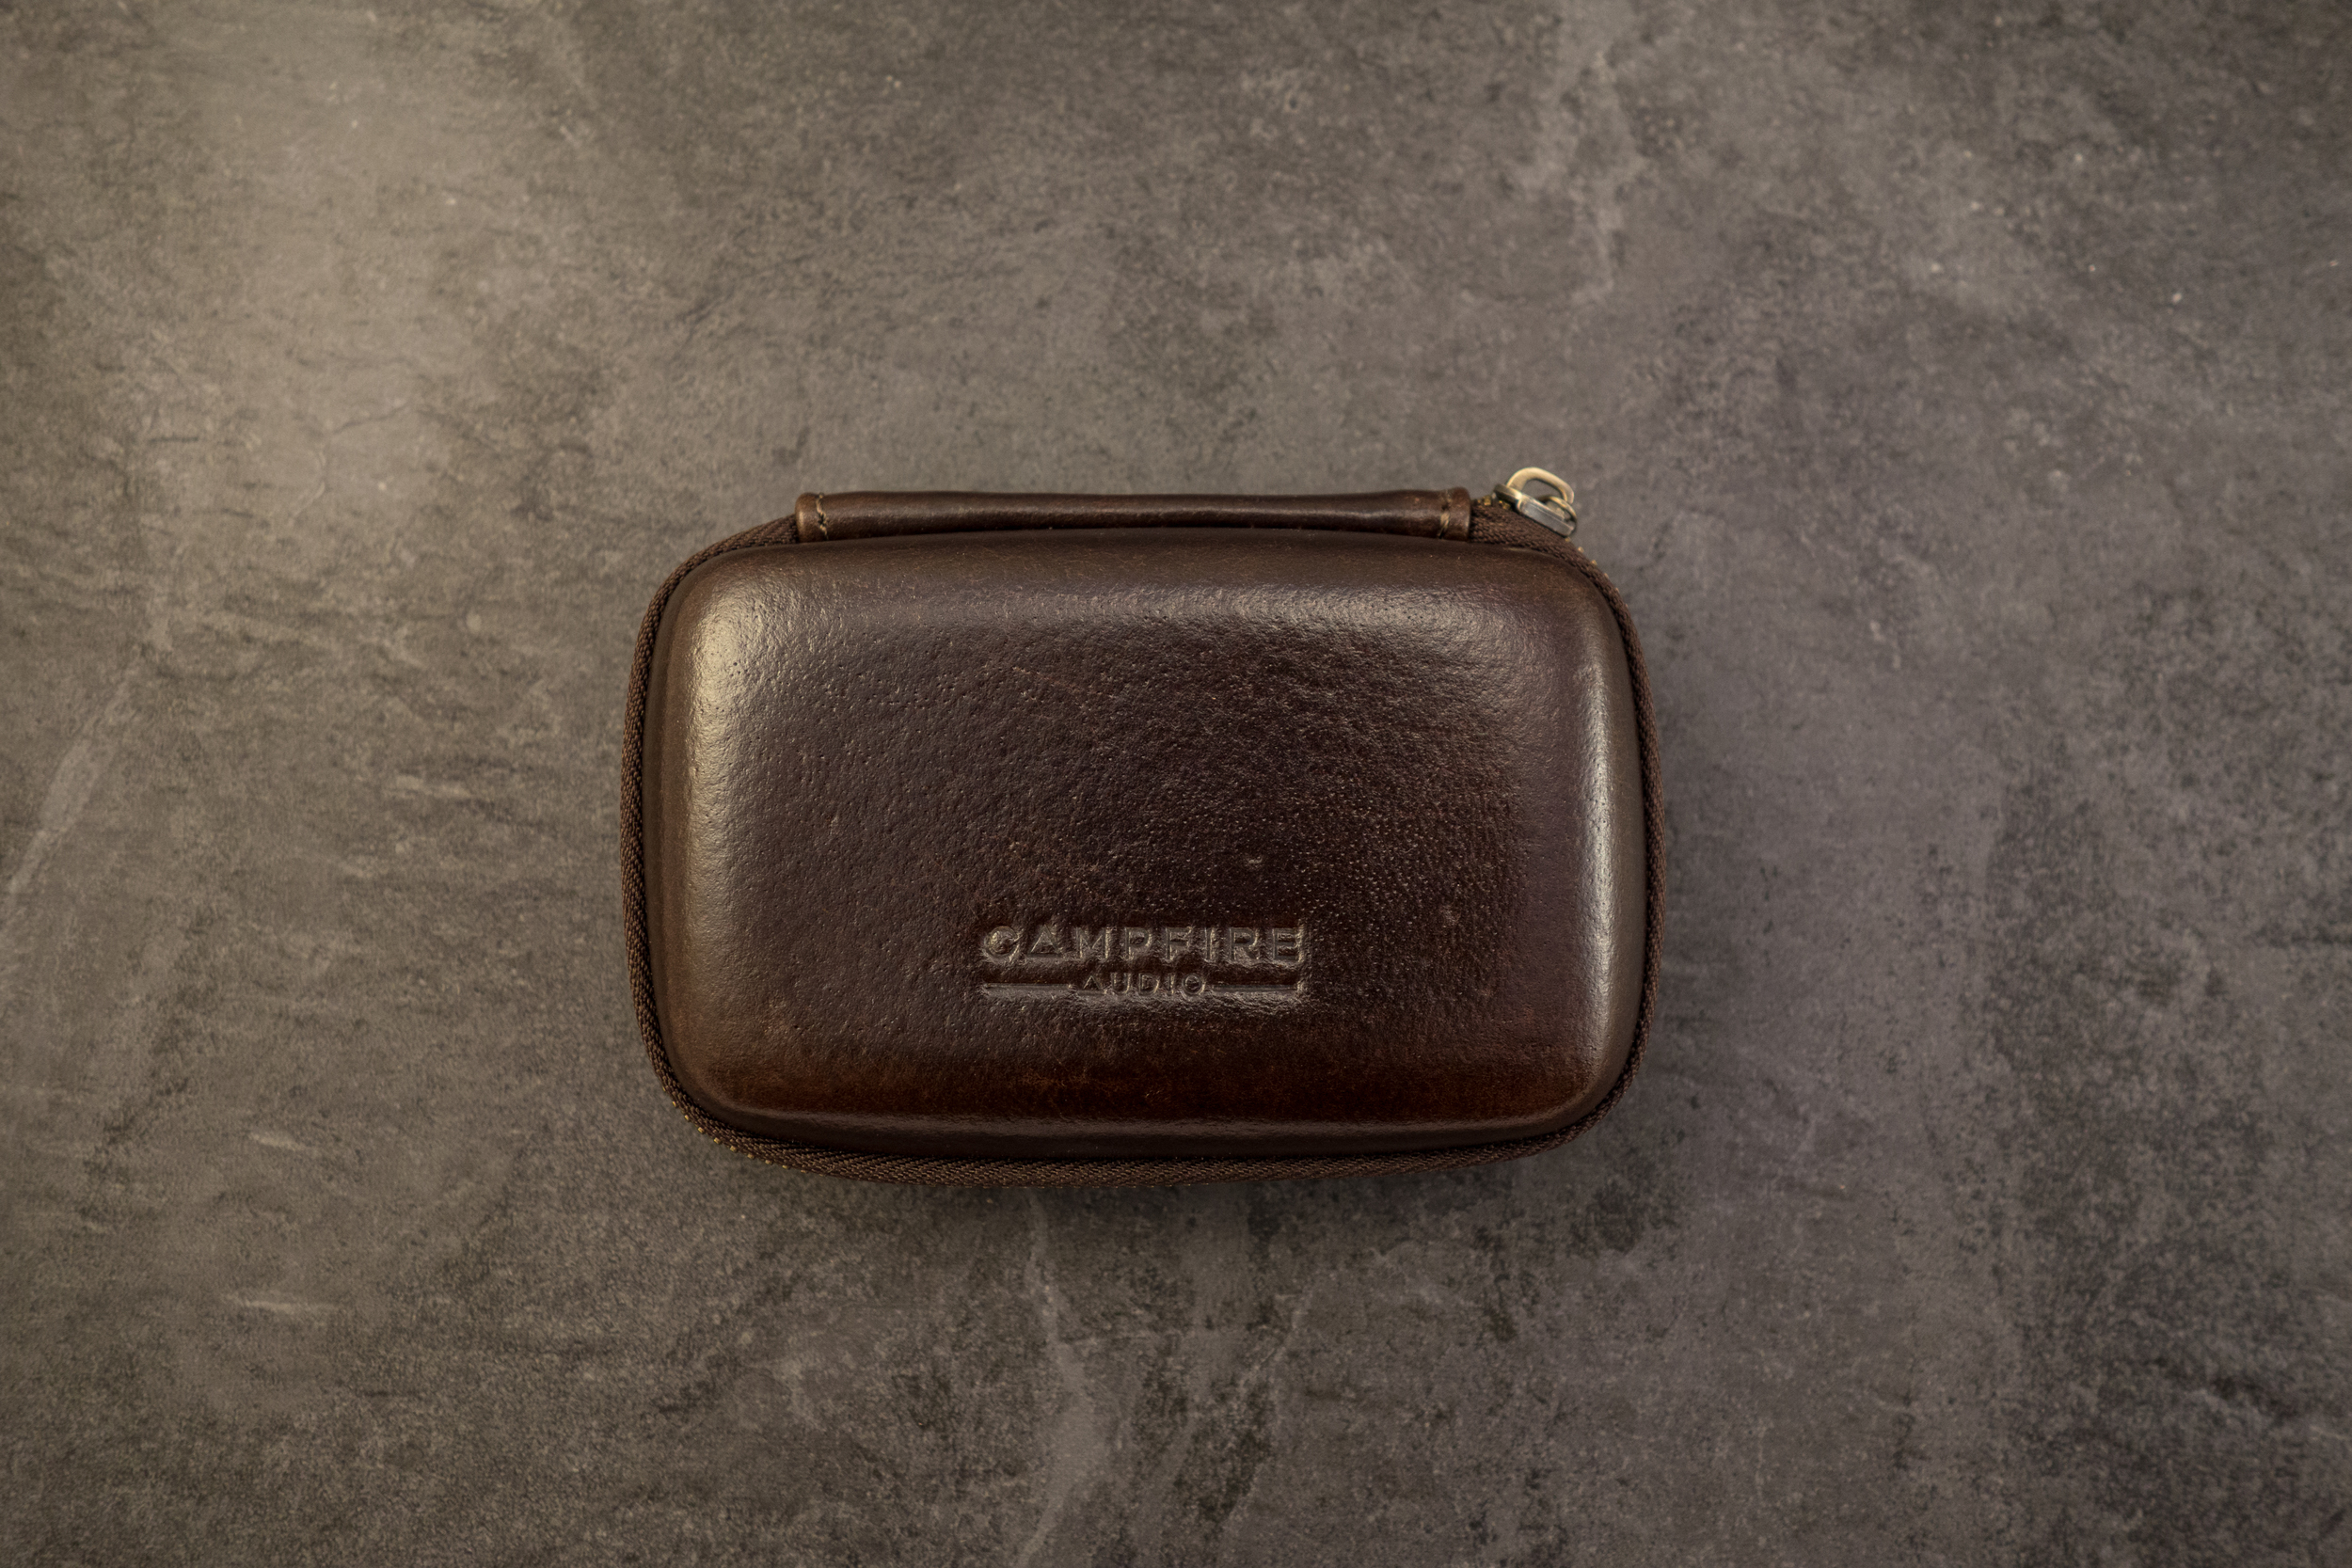 The Andromeda case comes in a nice dark brown leather finish.